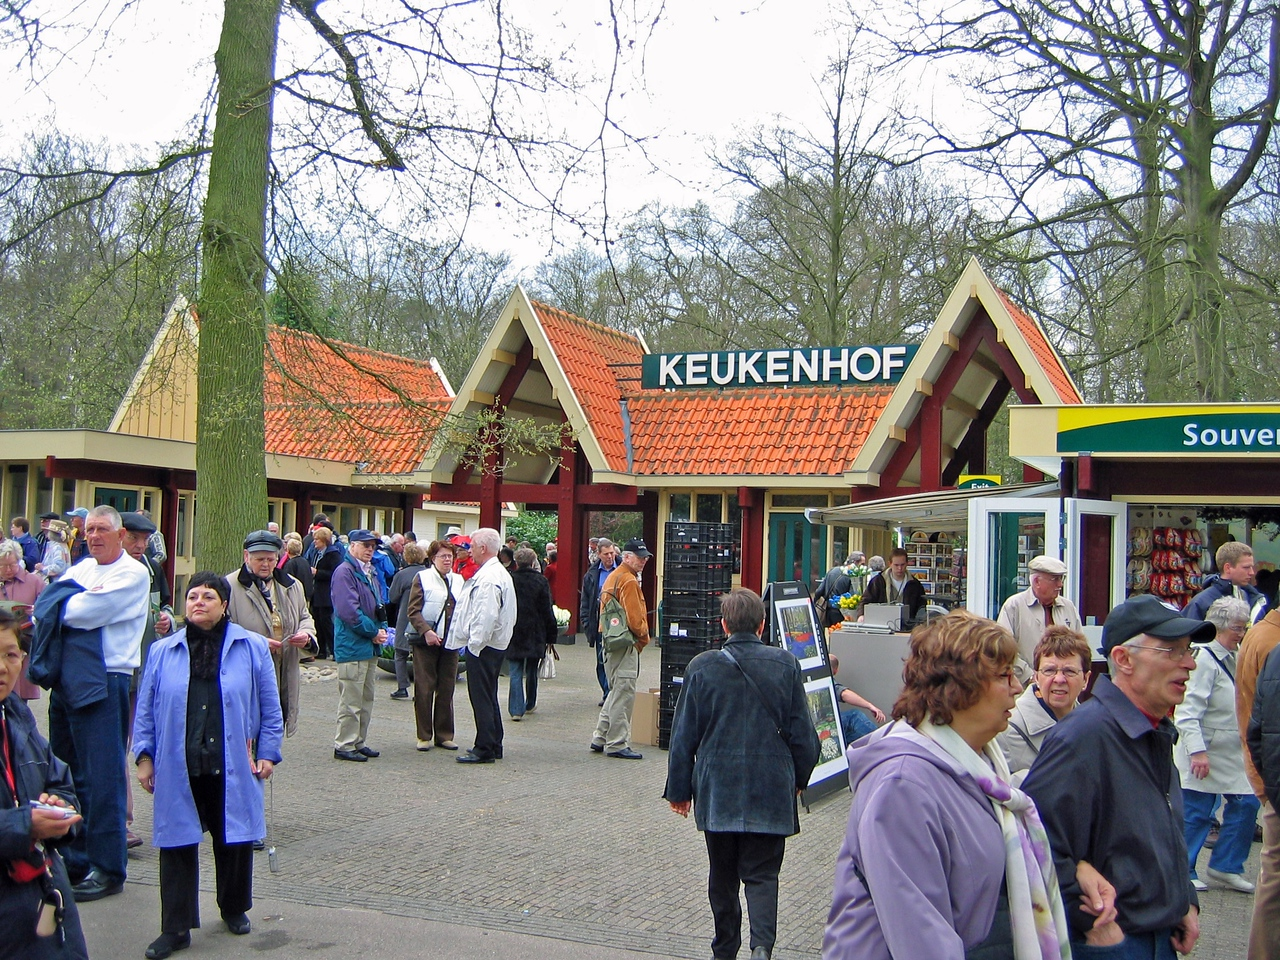 The Keukenhof is open only 7-8 weeks each year from late March to mid-May.